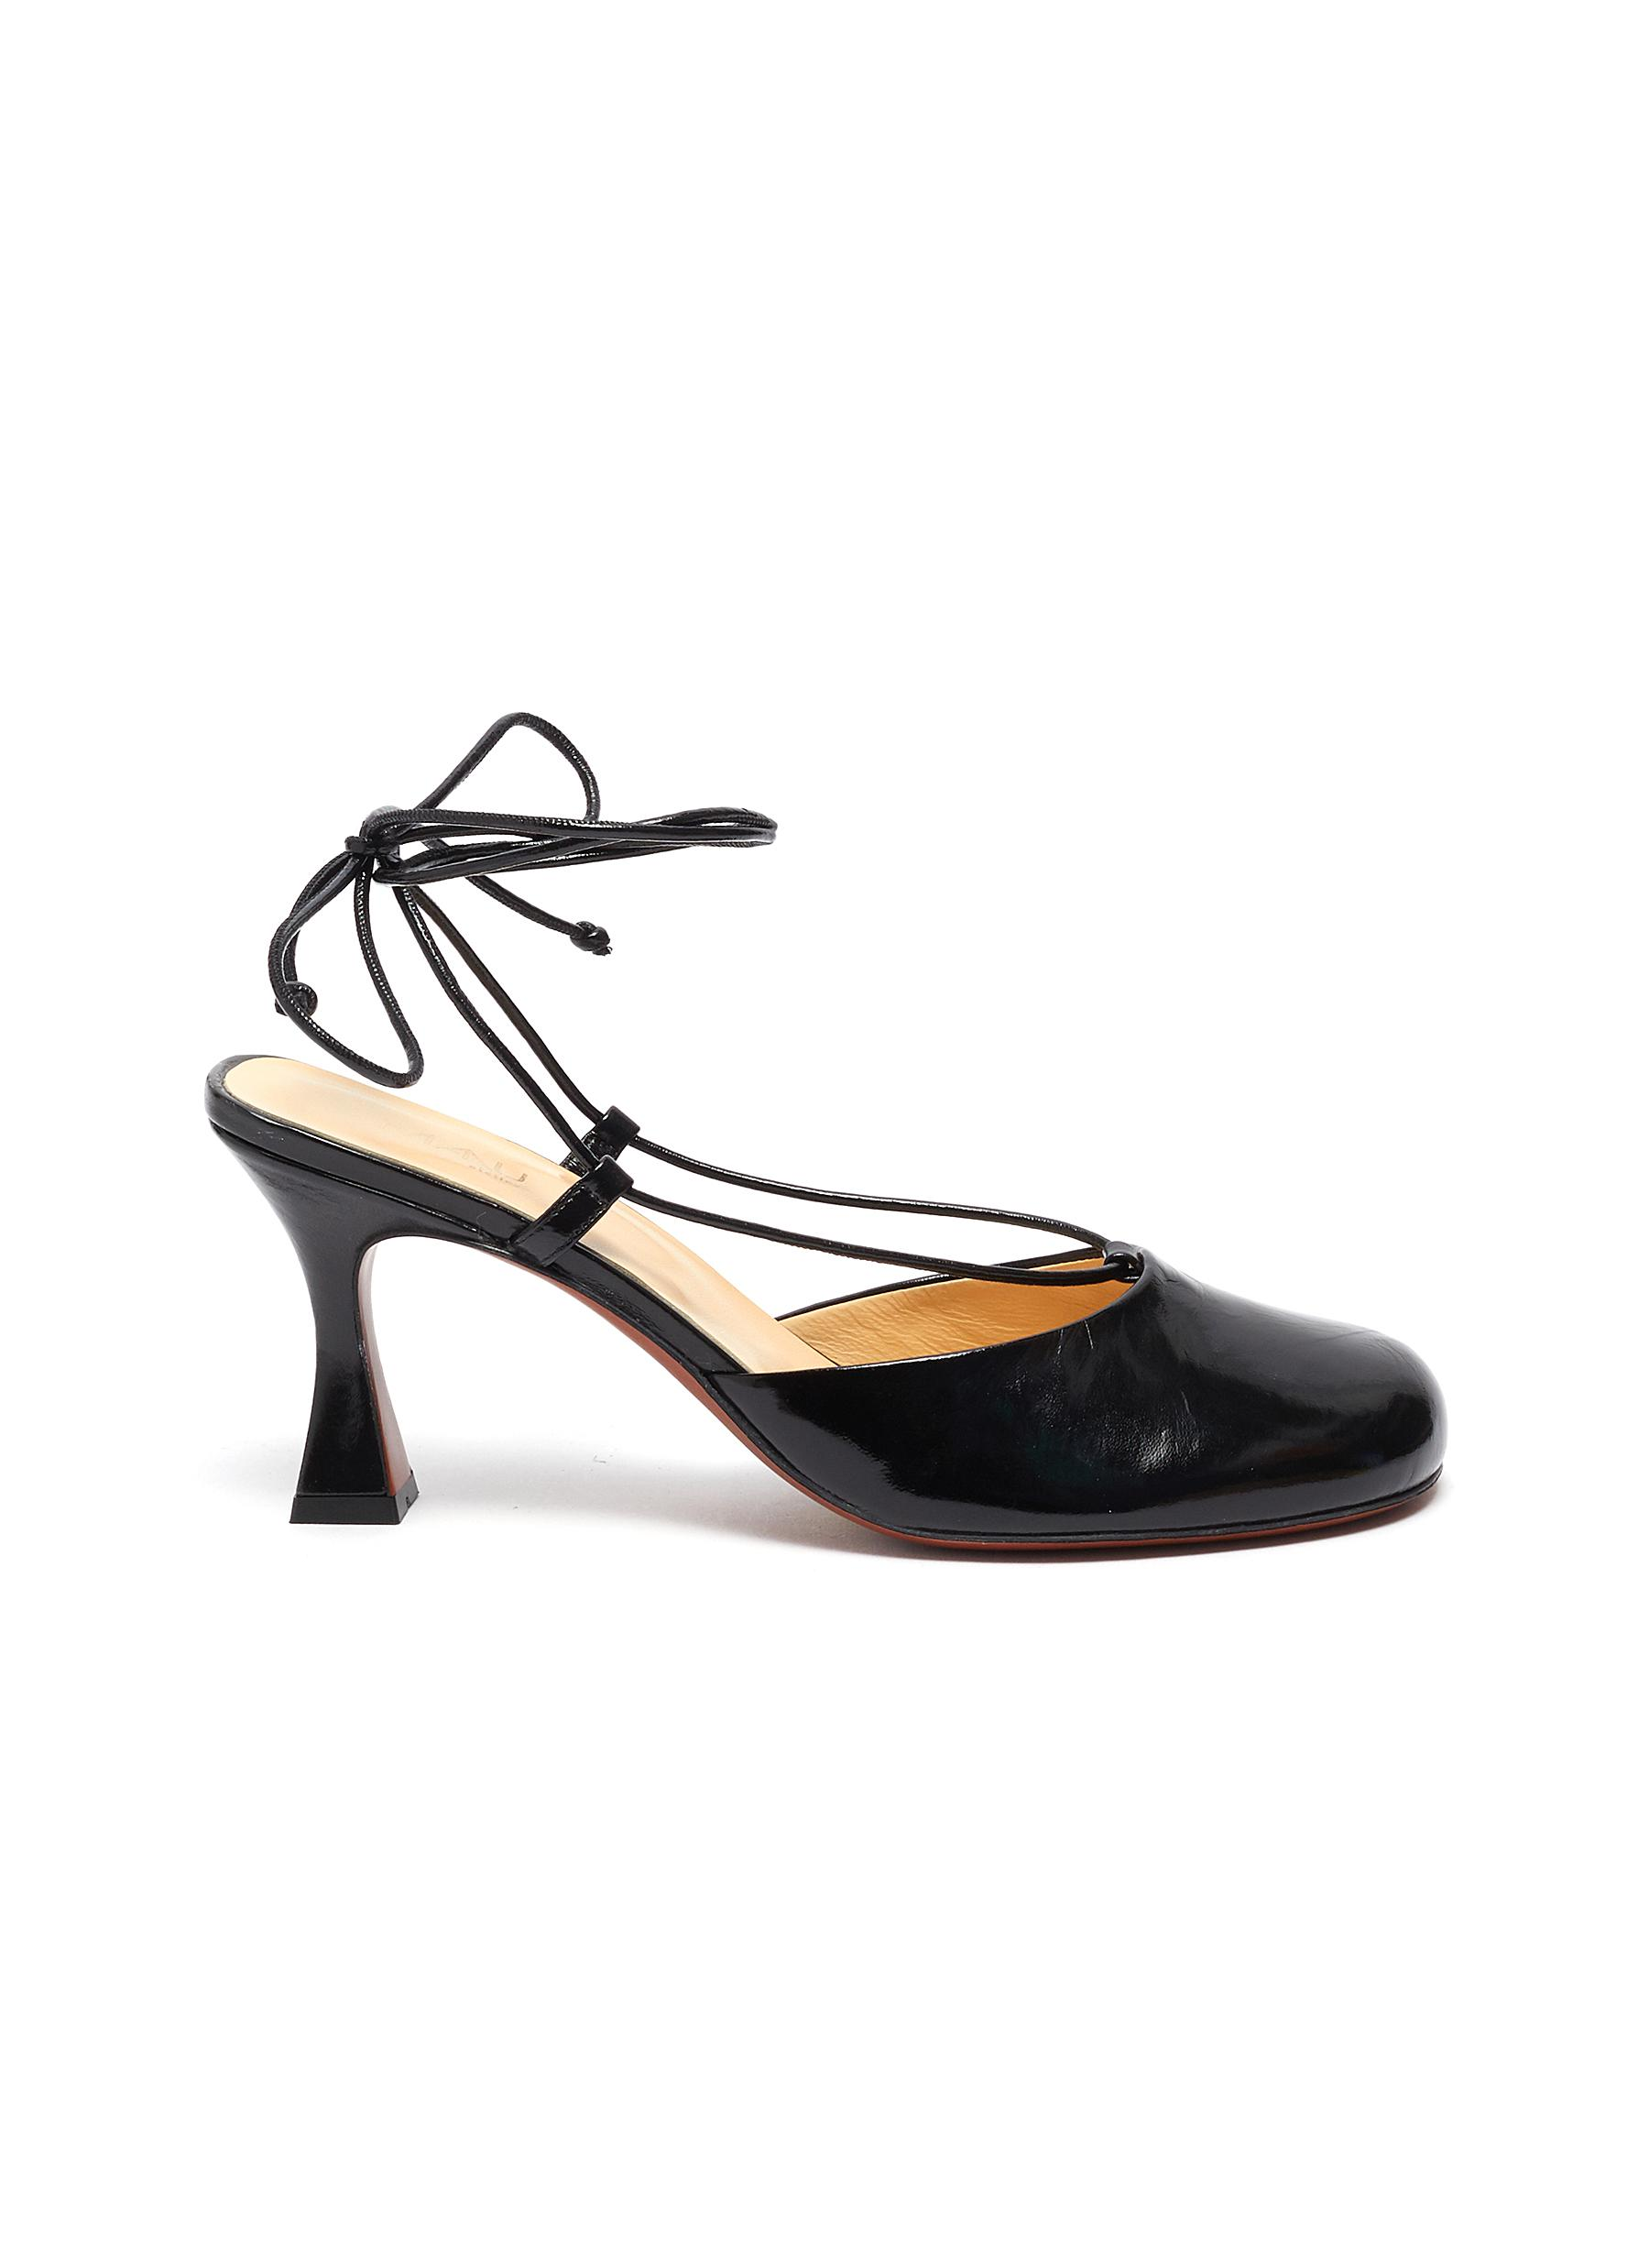 Manu Atelier High Heels Pina lace up closed toe leather heels